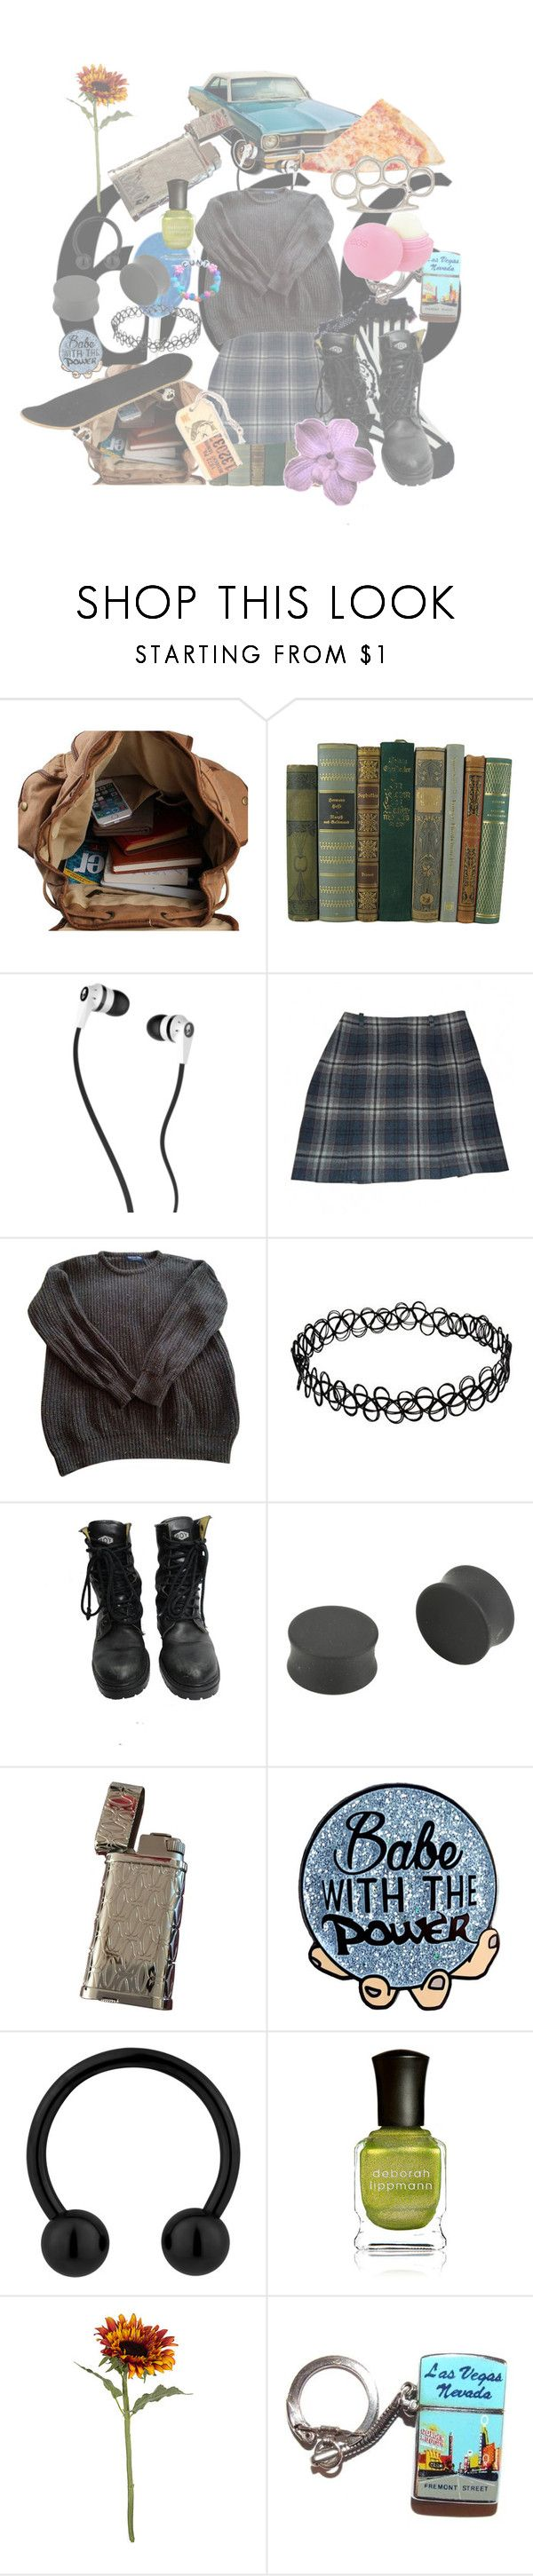 """""""Just found the band """"Creeper"""" and they're really good, you should go listen to them, they only have like one album out"""" by diana-littlefield ❤ liked on Polyvore featuring Skullcandy, Cacharel, American Apparel, CO, BOY London, Bronx, Billionaire Boys Club, Deborah Lippmann, Pavilion Broadway and Fremont"""